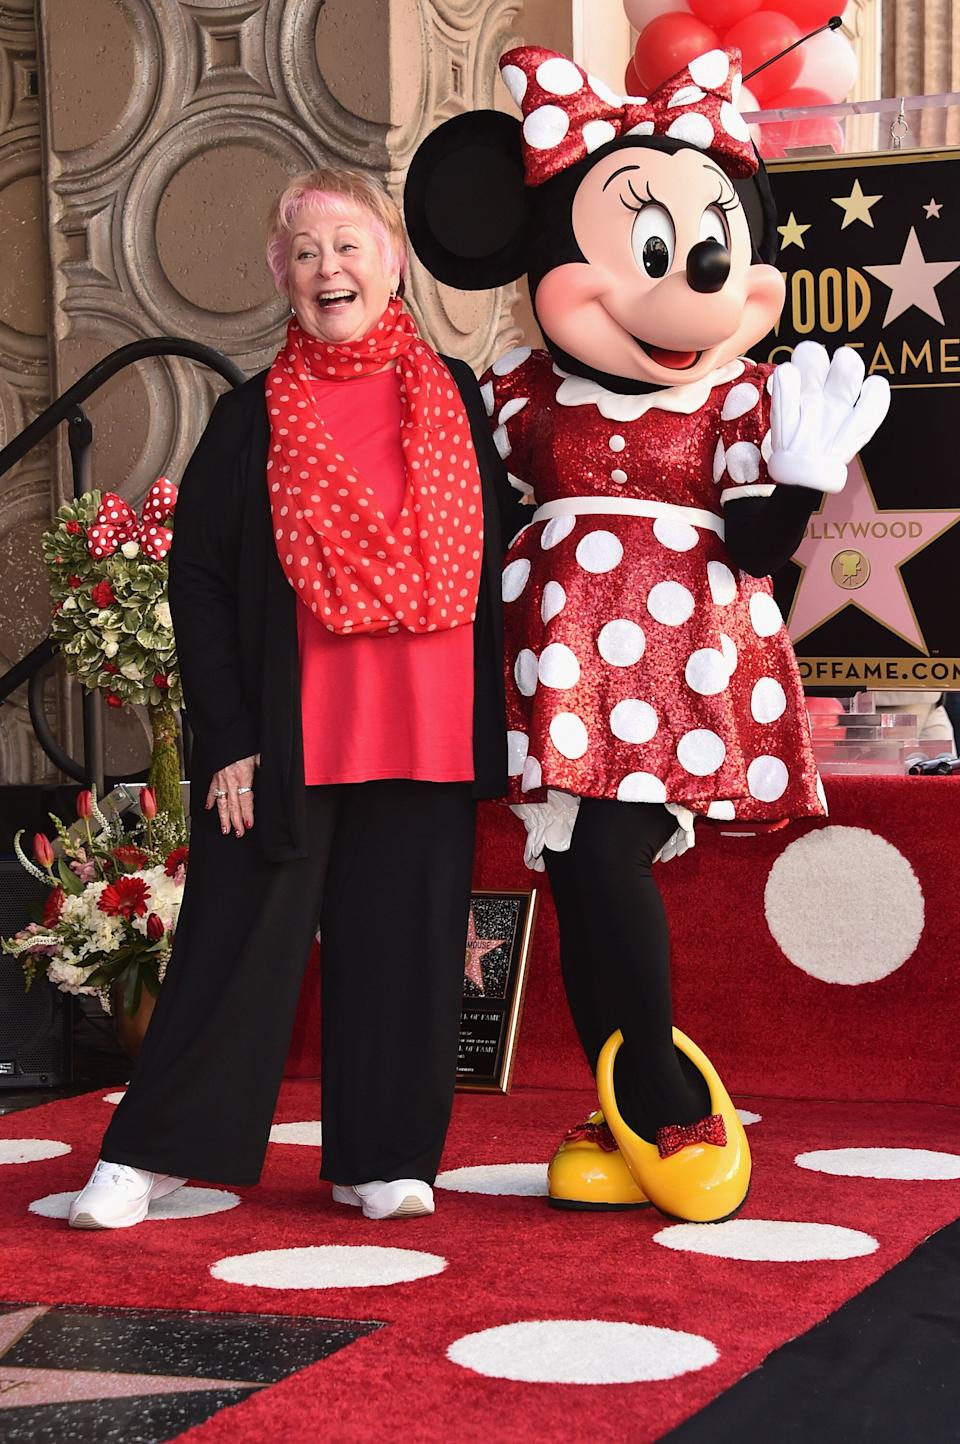 <strong>Russi Taylor (1944-2019)</strong><br />Russi voicedDisneycharacter Minnie Mouse for more than 30 years.Through the role, Russi found her real-life Mickey in the form of Wayne Allwine, who had voiced Mickey Mouse since 1977.